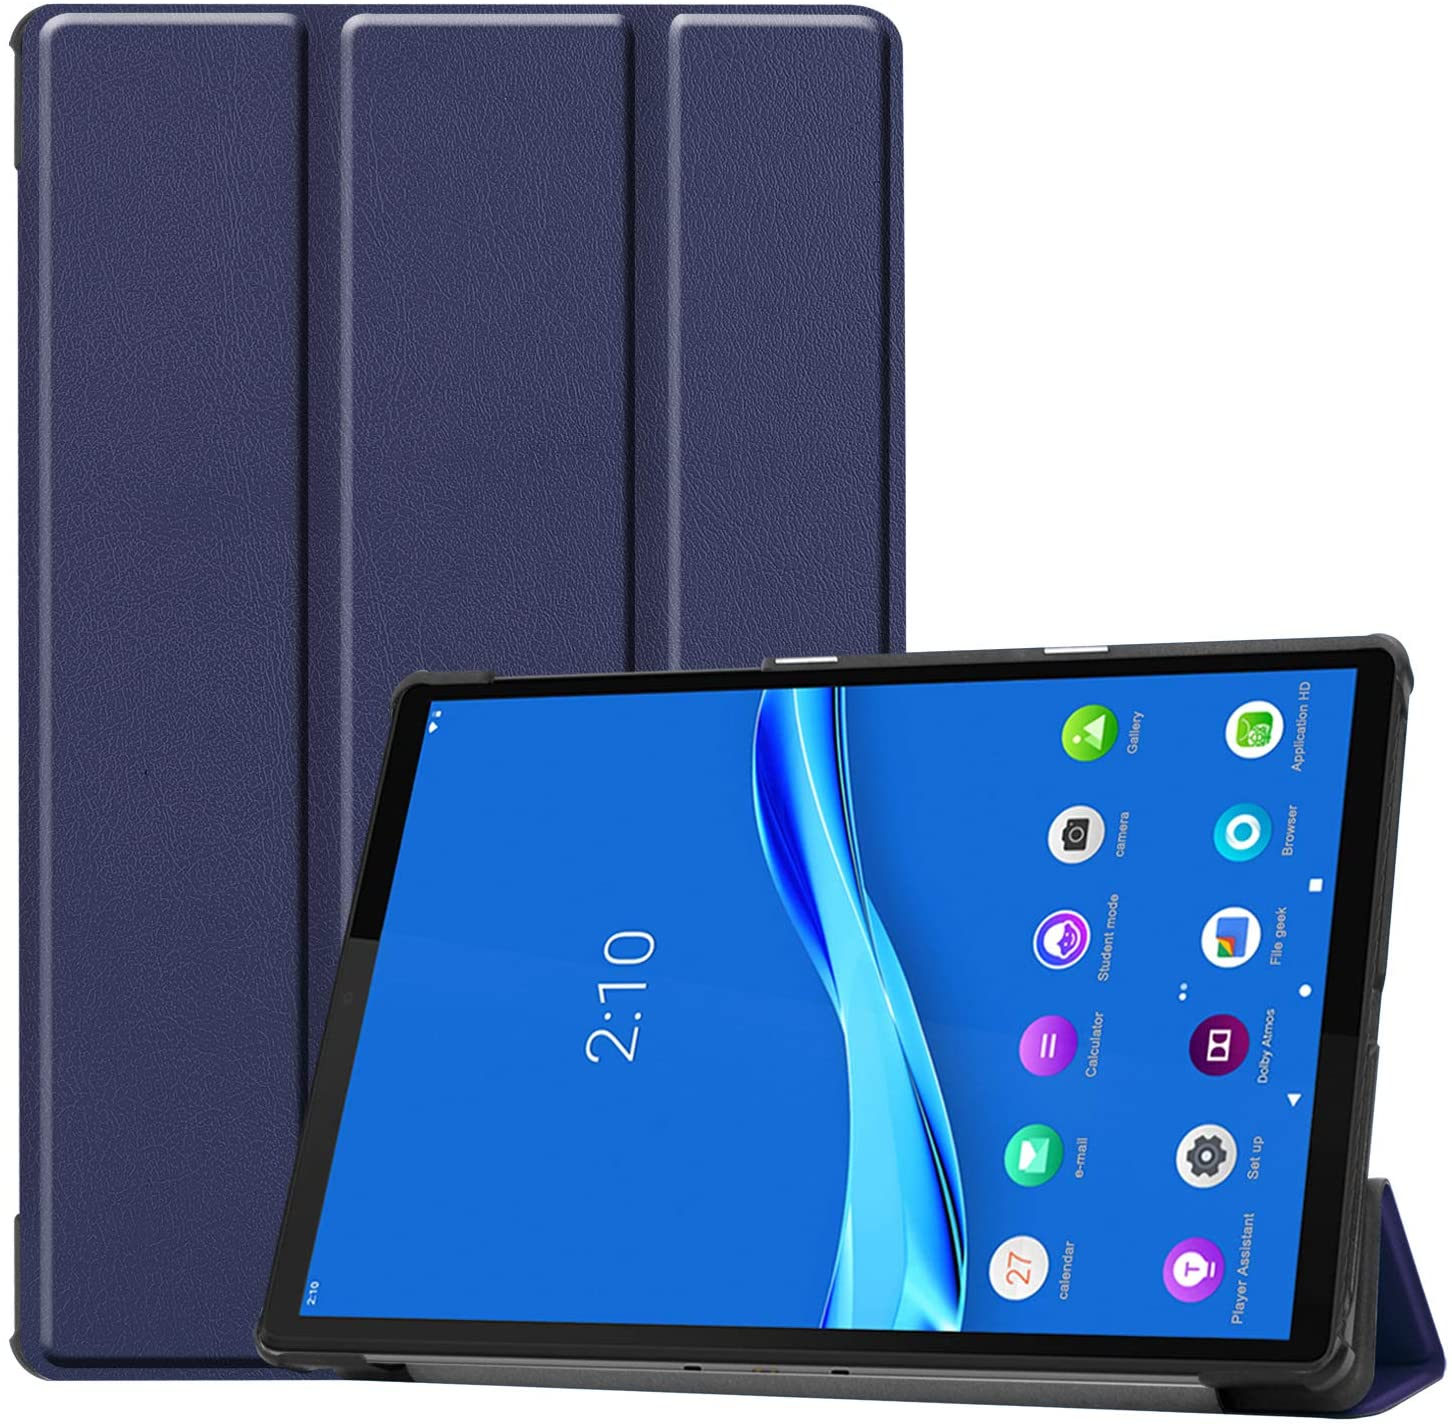 PULEN for Lenovo Tab M10 Plus Case 10.3 Inch,PU Leather Smart Case with Stand [Anti Slip][Shock-Absorption] Lightweight Protective Cover for Lenovo Smart Tab M10 Plus 2020 (Blue)